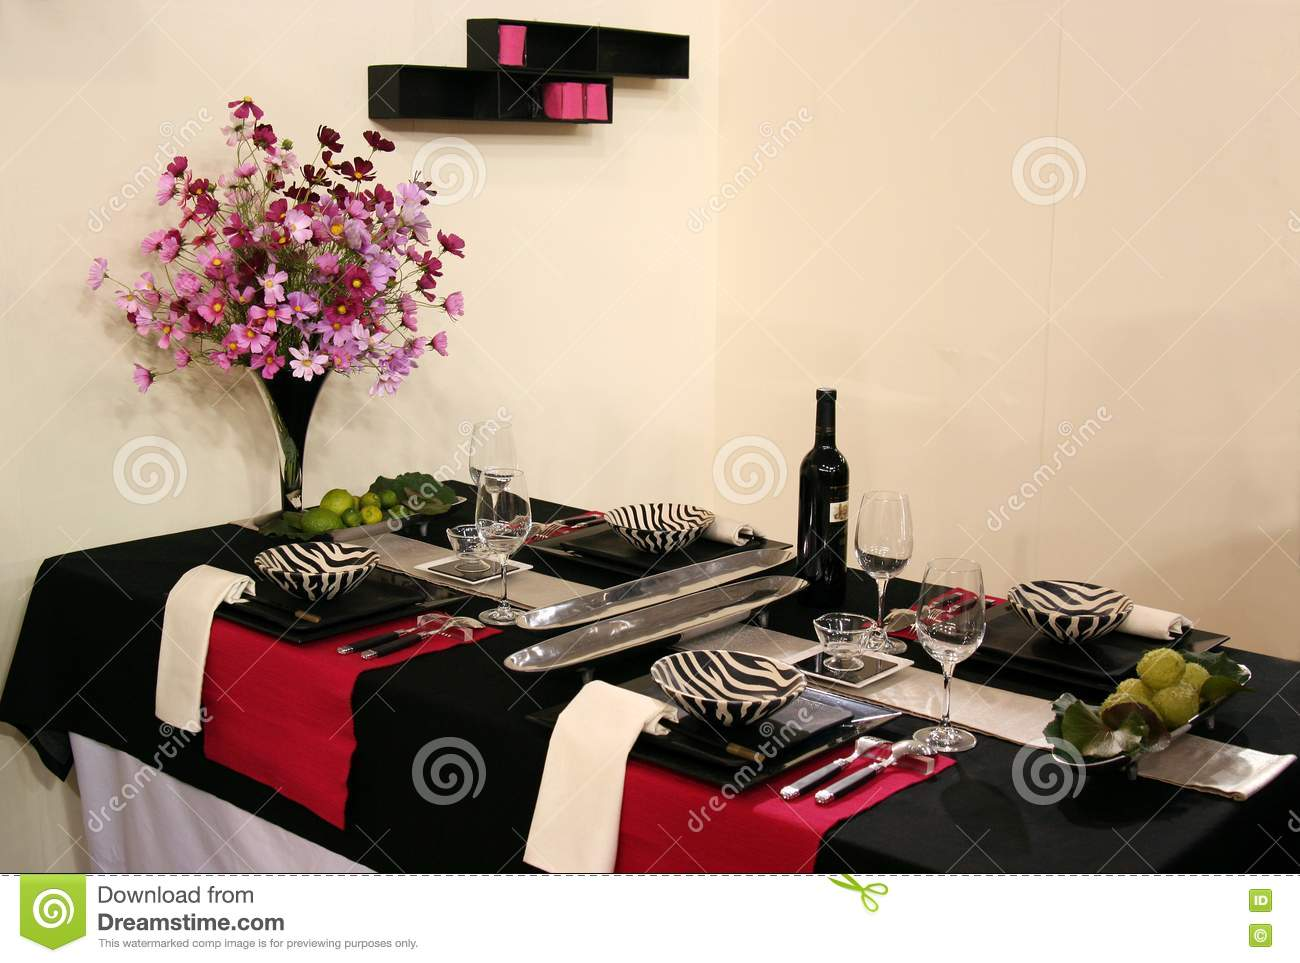 Table design in japan royalty free stock image image for Table design japon